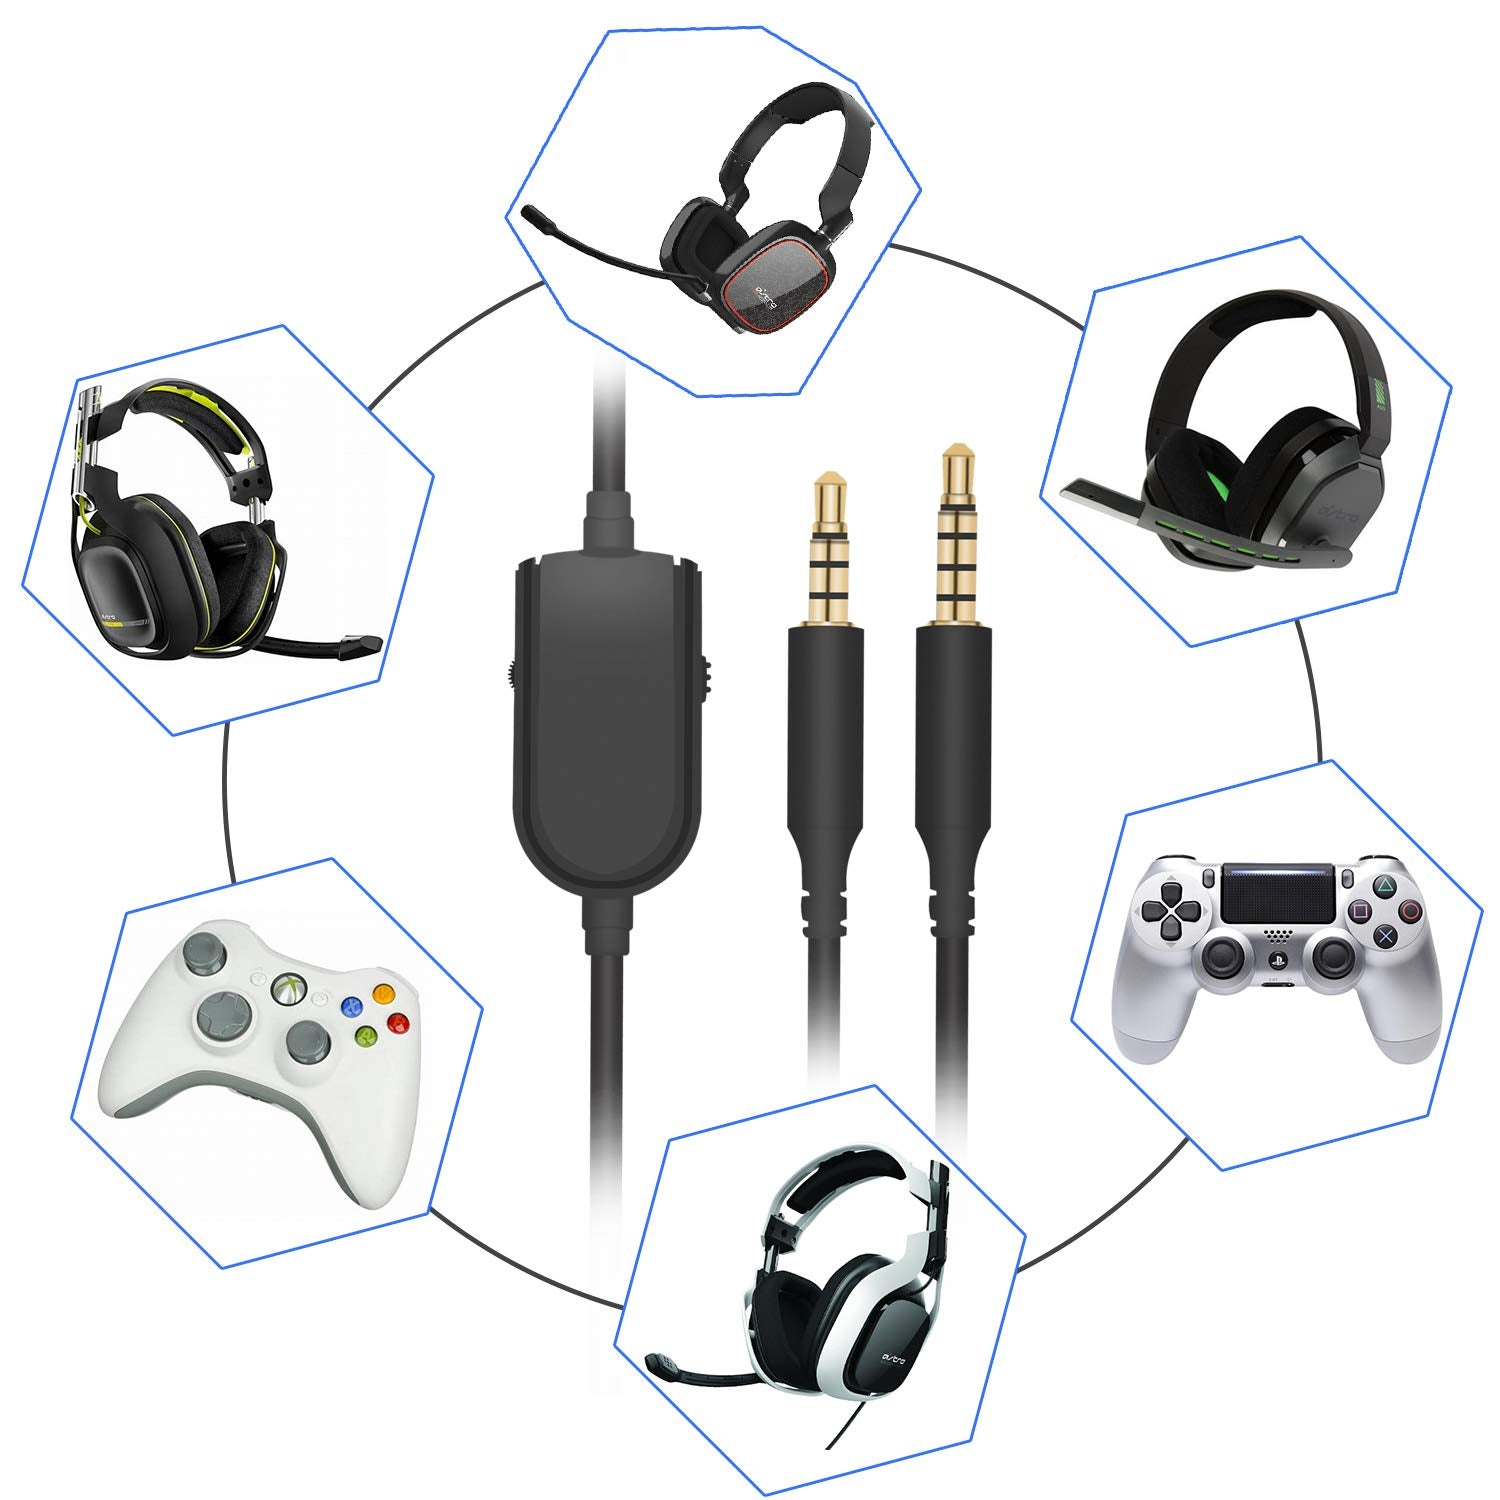 Wireless Headphones Wire Lead A30 REYTID Replacement Astro Gaming Headset Mobile Aux Cable A40 Gen 1 /& Gen 2 TR